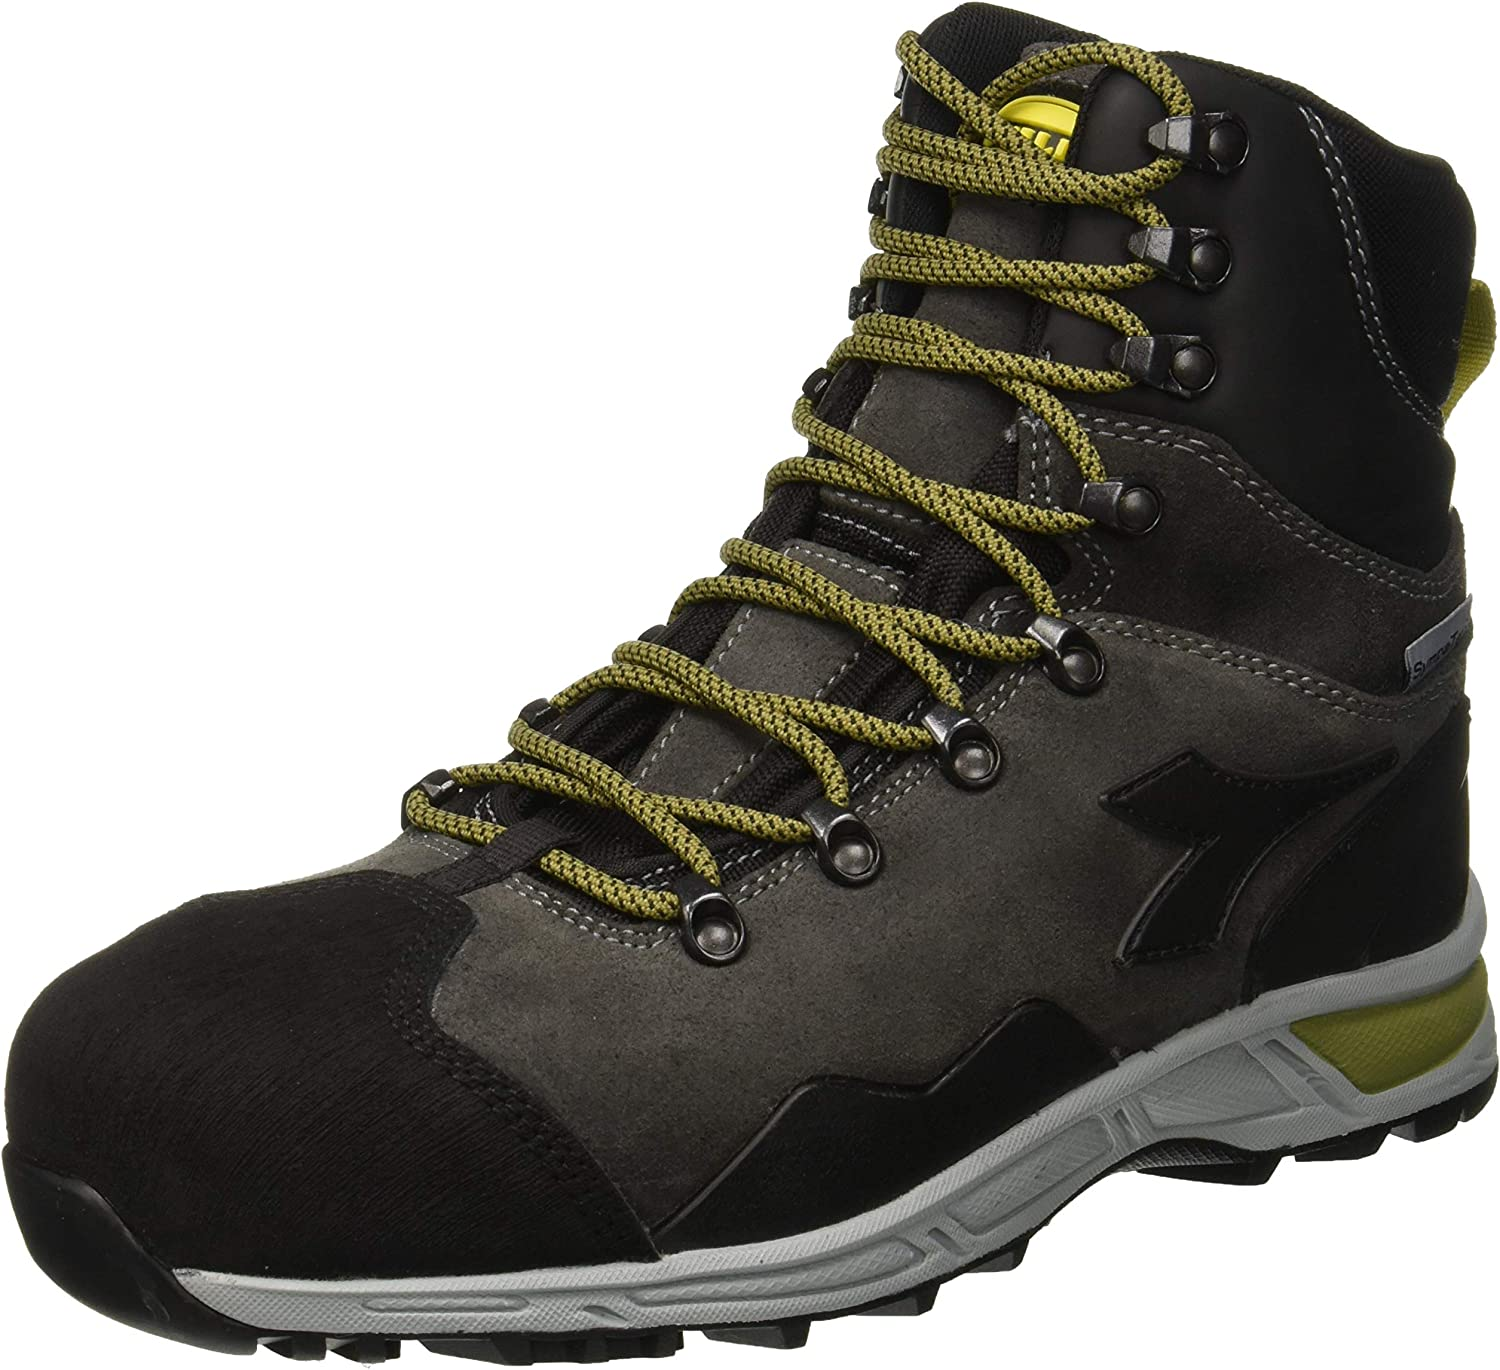 Diadora Unisex Adults' 701.173537_80004 Safety shoes